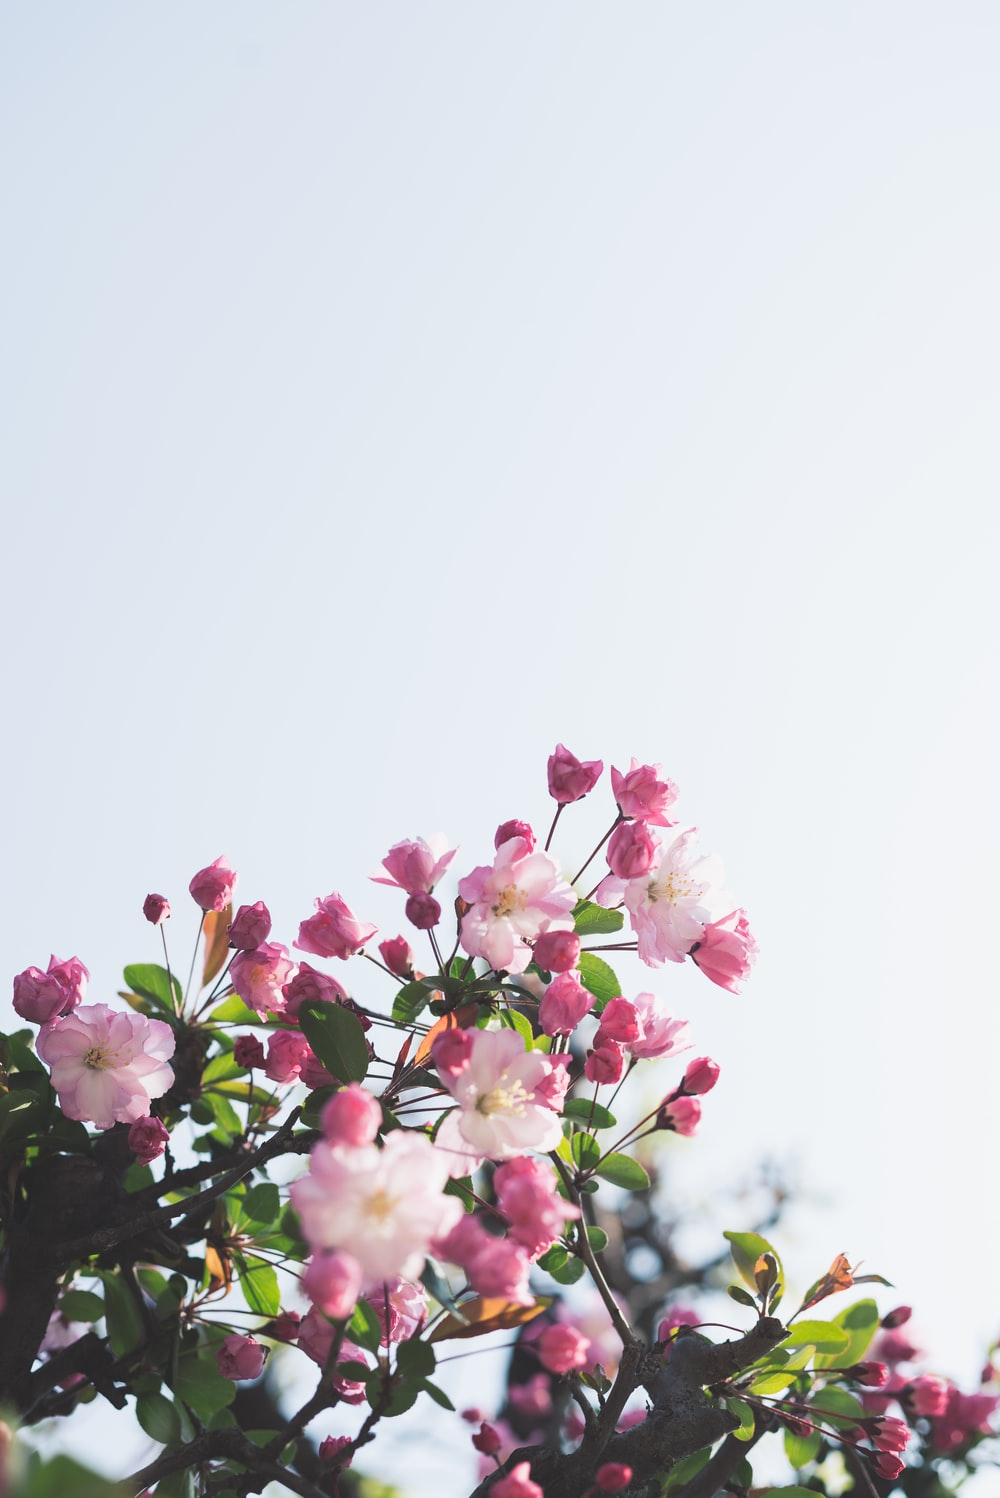 Spring Pictures Download Free Images On Unsplash